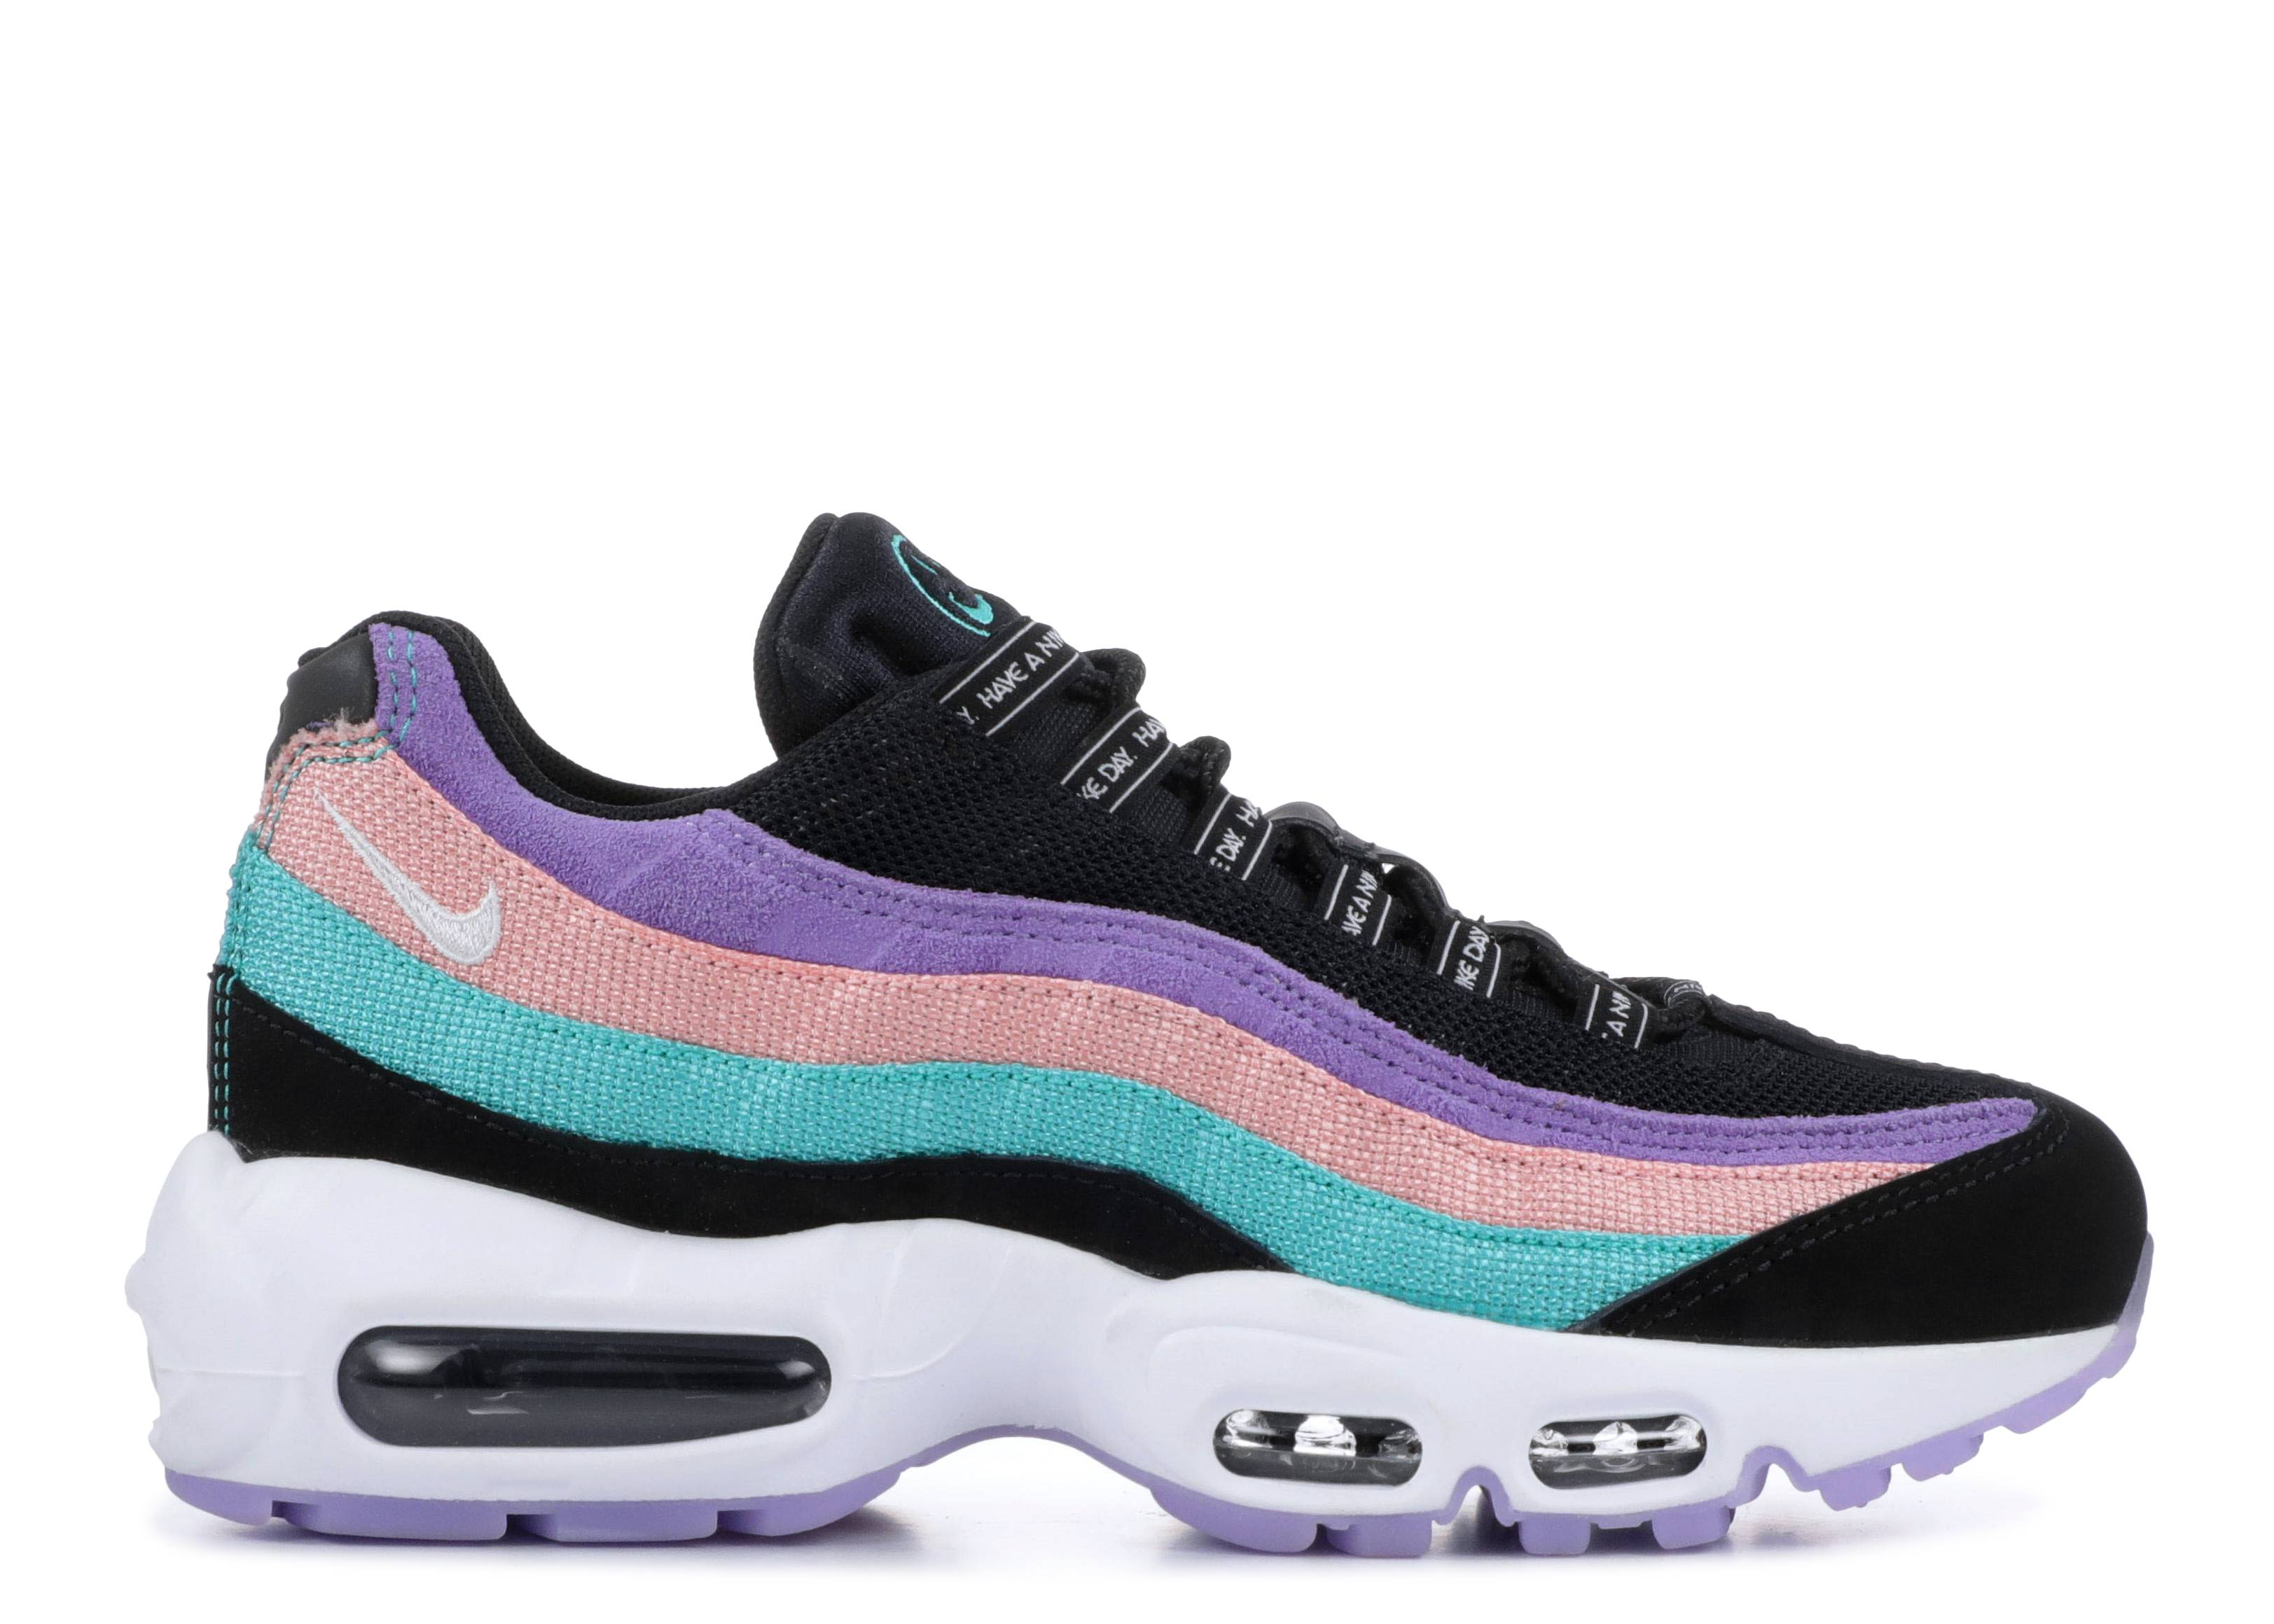 new styles 8fa78 1293b nike air max 95